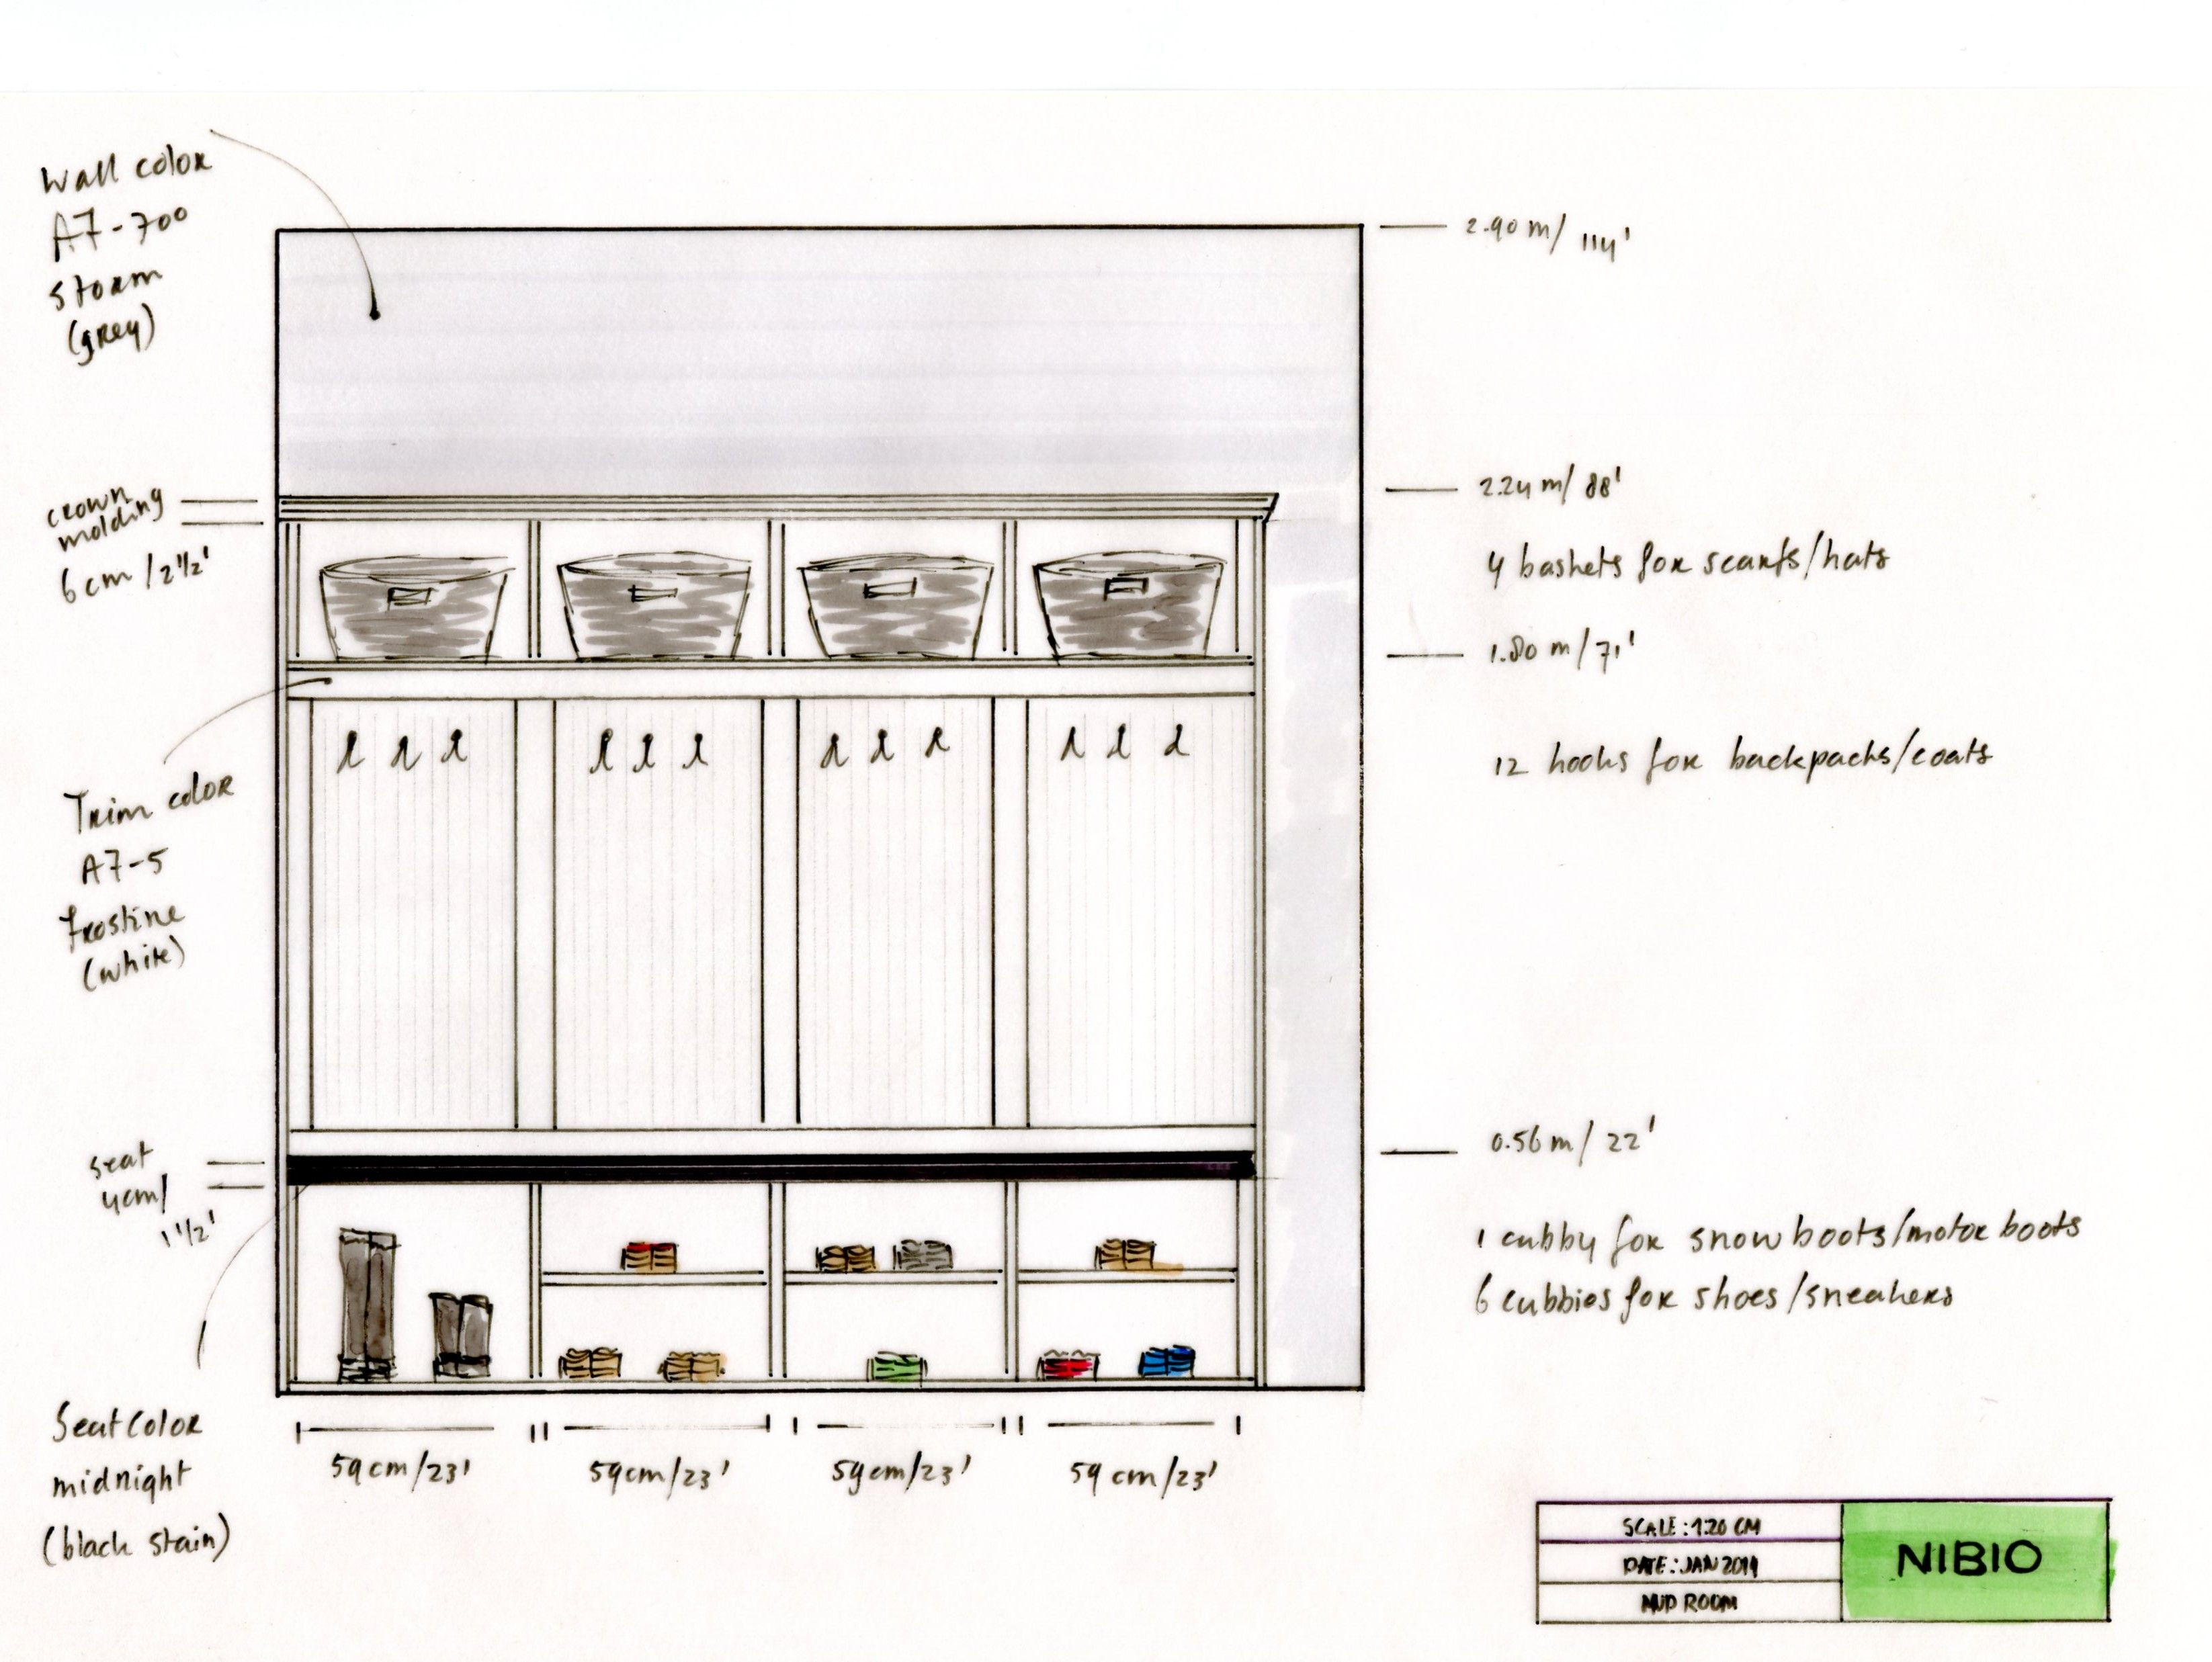 Pin By Alexis Solomon On Marvellous Millwork Mudroom Cabinets Diy Furniture Plans Mudroom